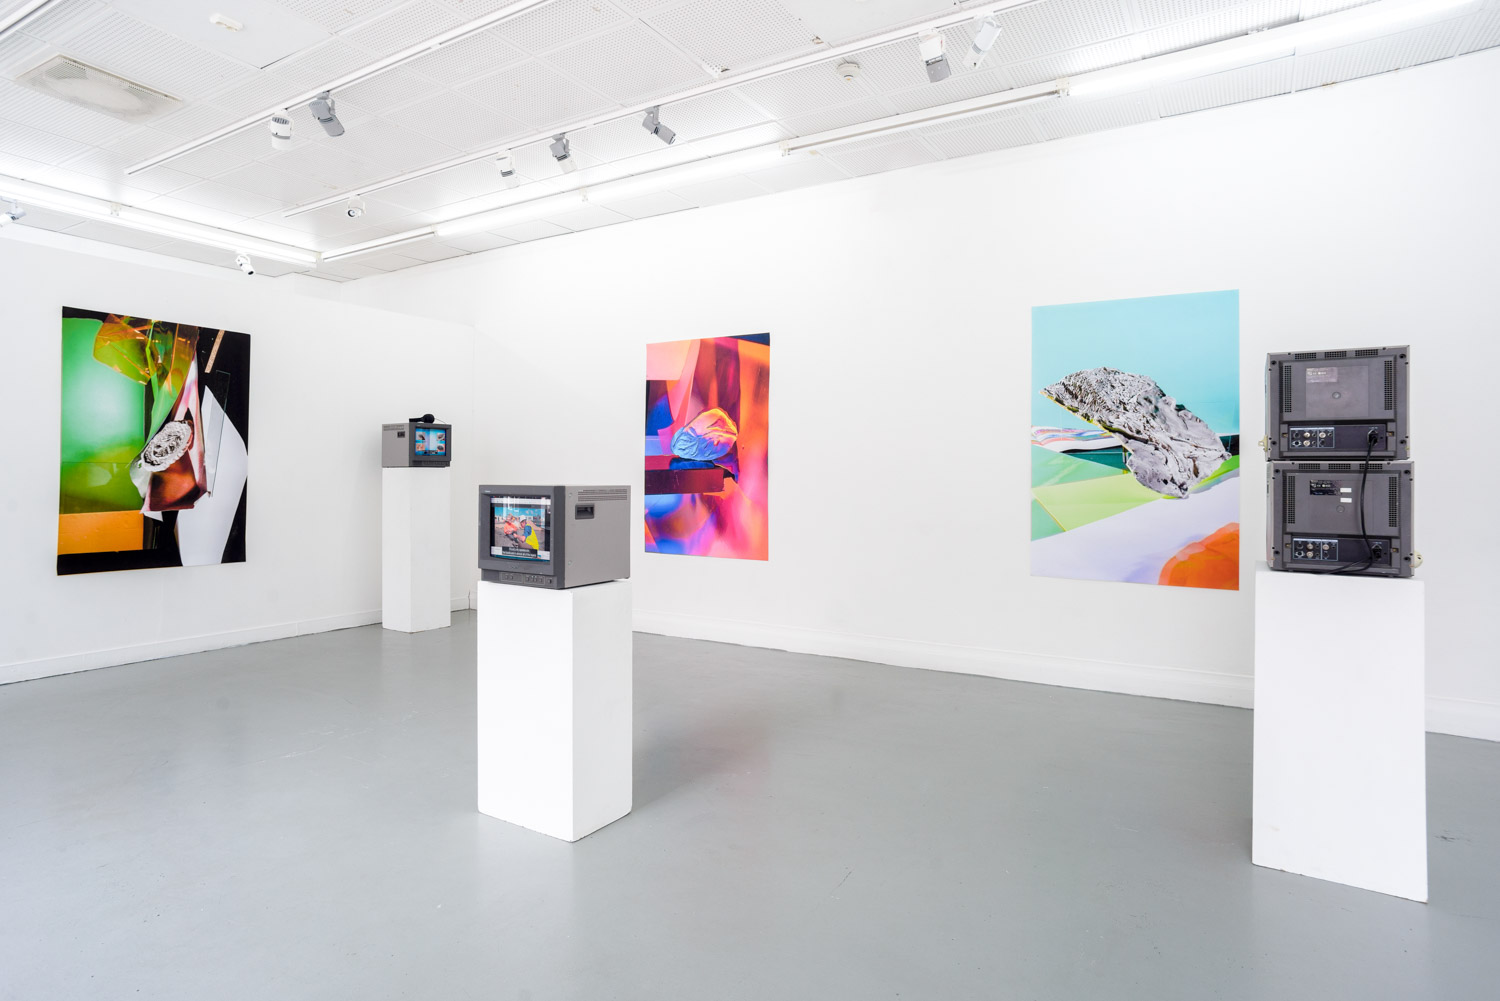 contemporary art installation in a white gallery with monitors on podiums and a frame on the wall by artist Stefano Conti